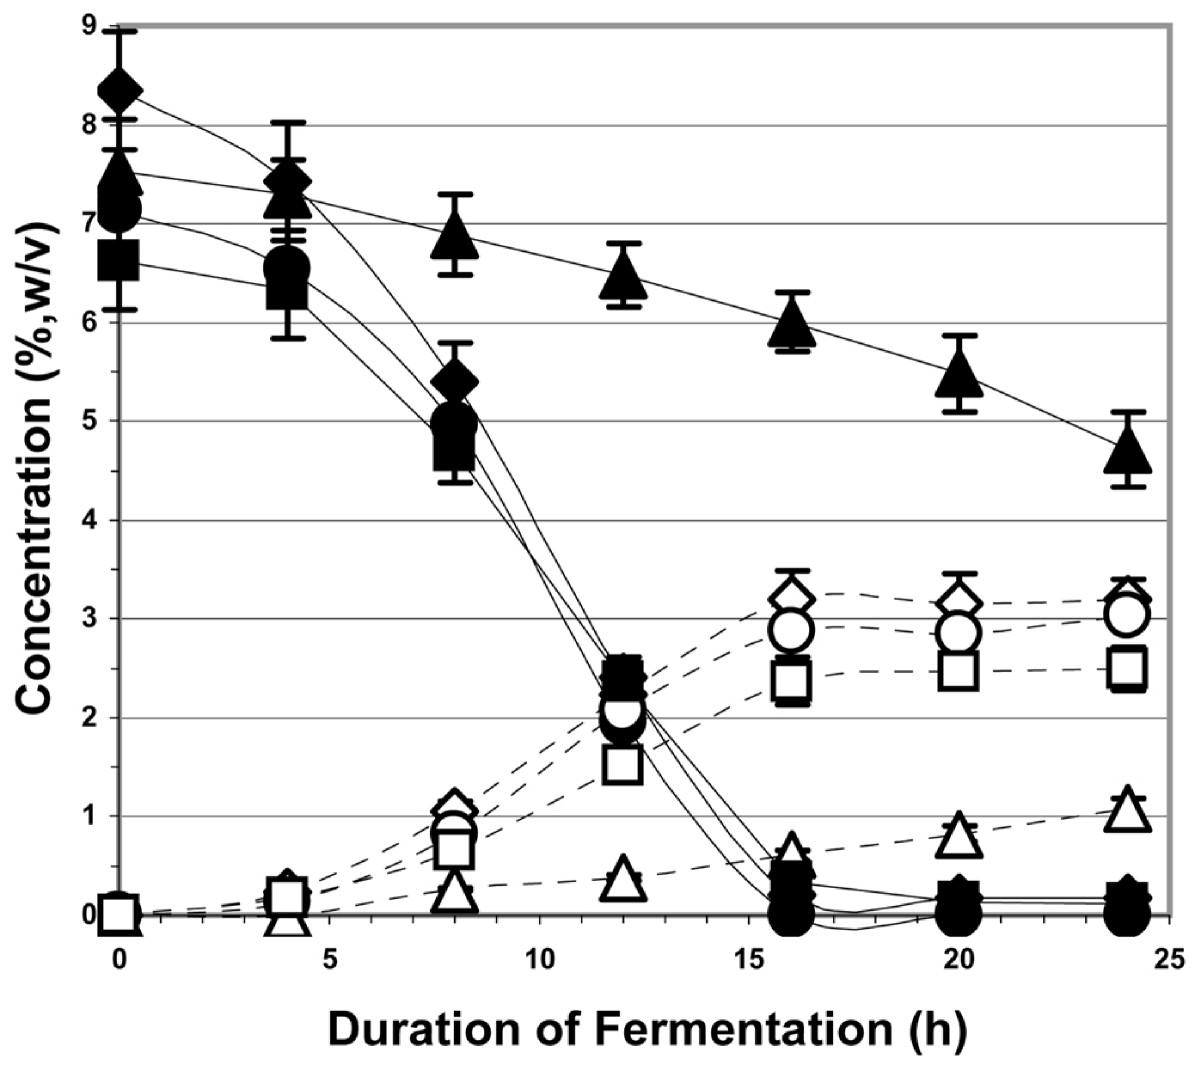 http://static-content.springer.com/image/art%3A10.1186%2F1754-6834-2-18/MediaObjects/13068_2009_Article_36_Fig1_HTML.jpg